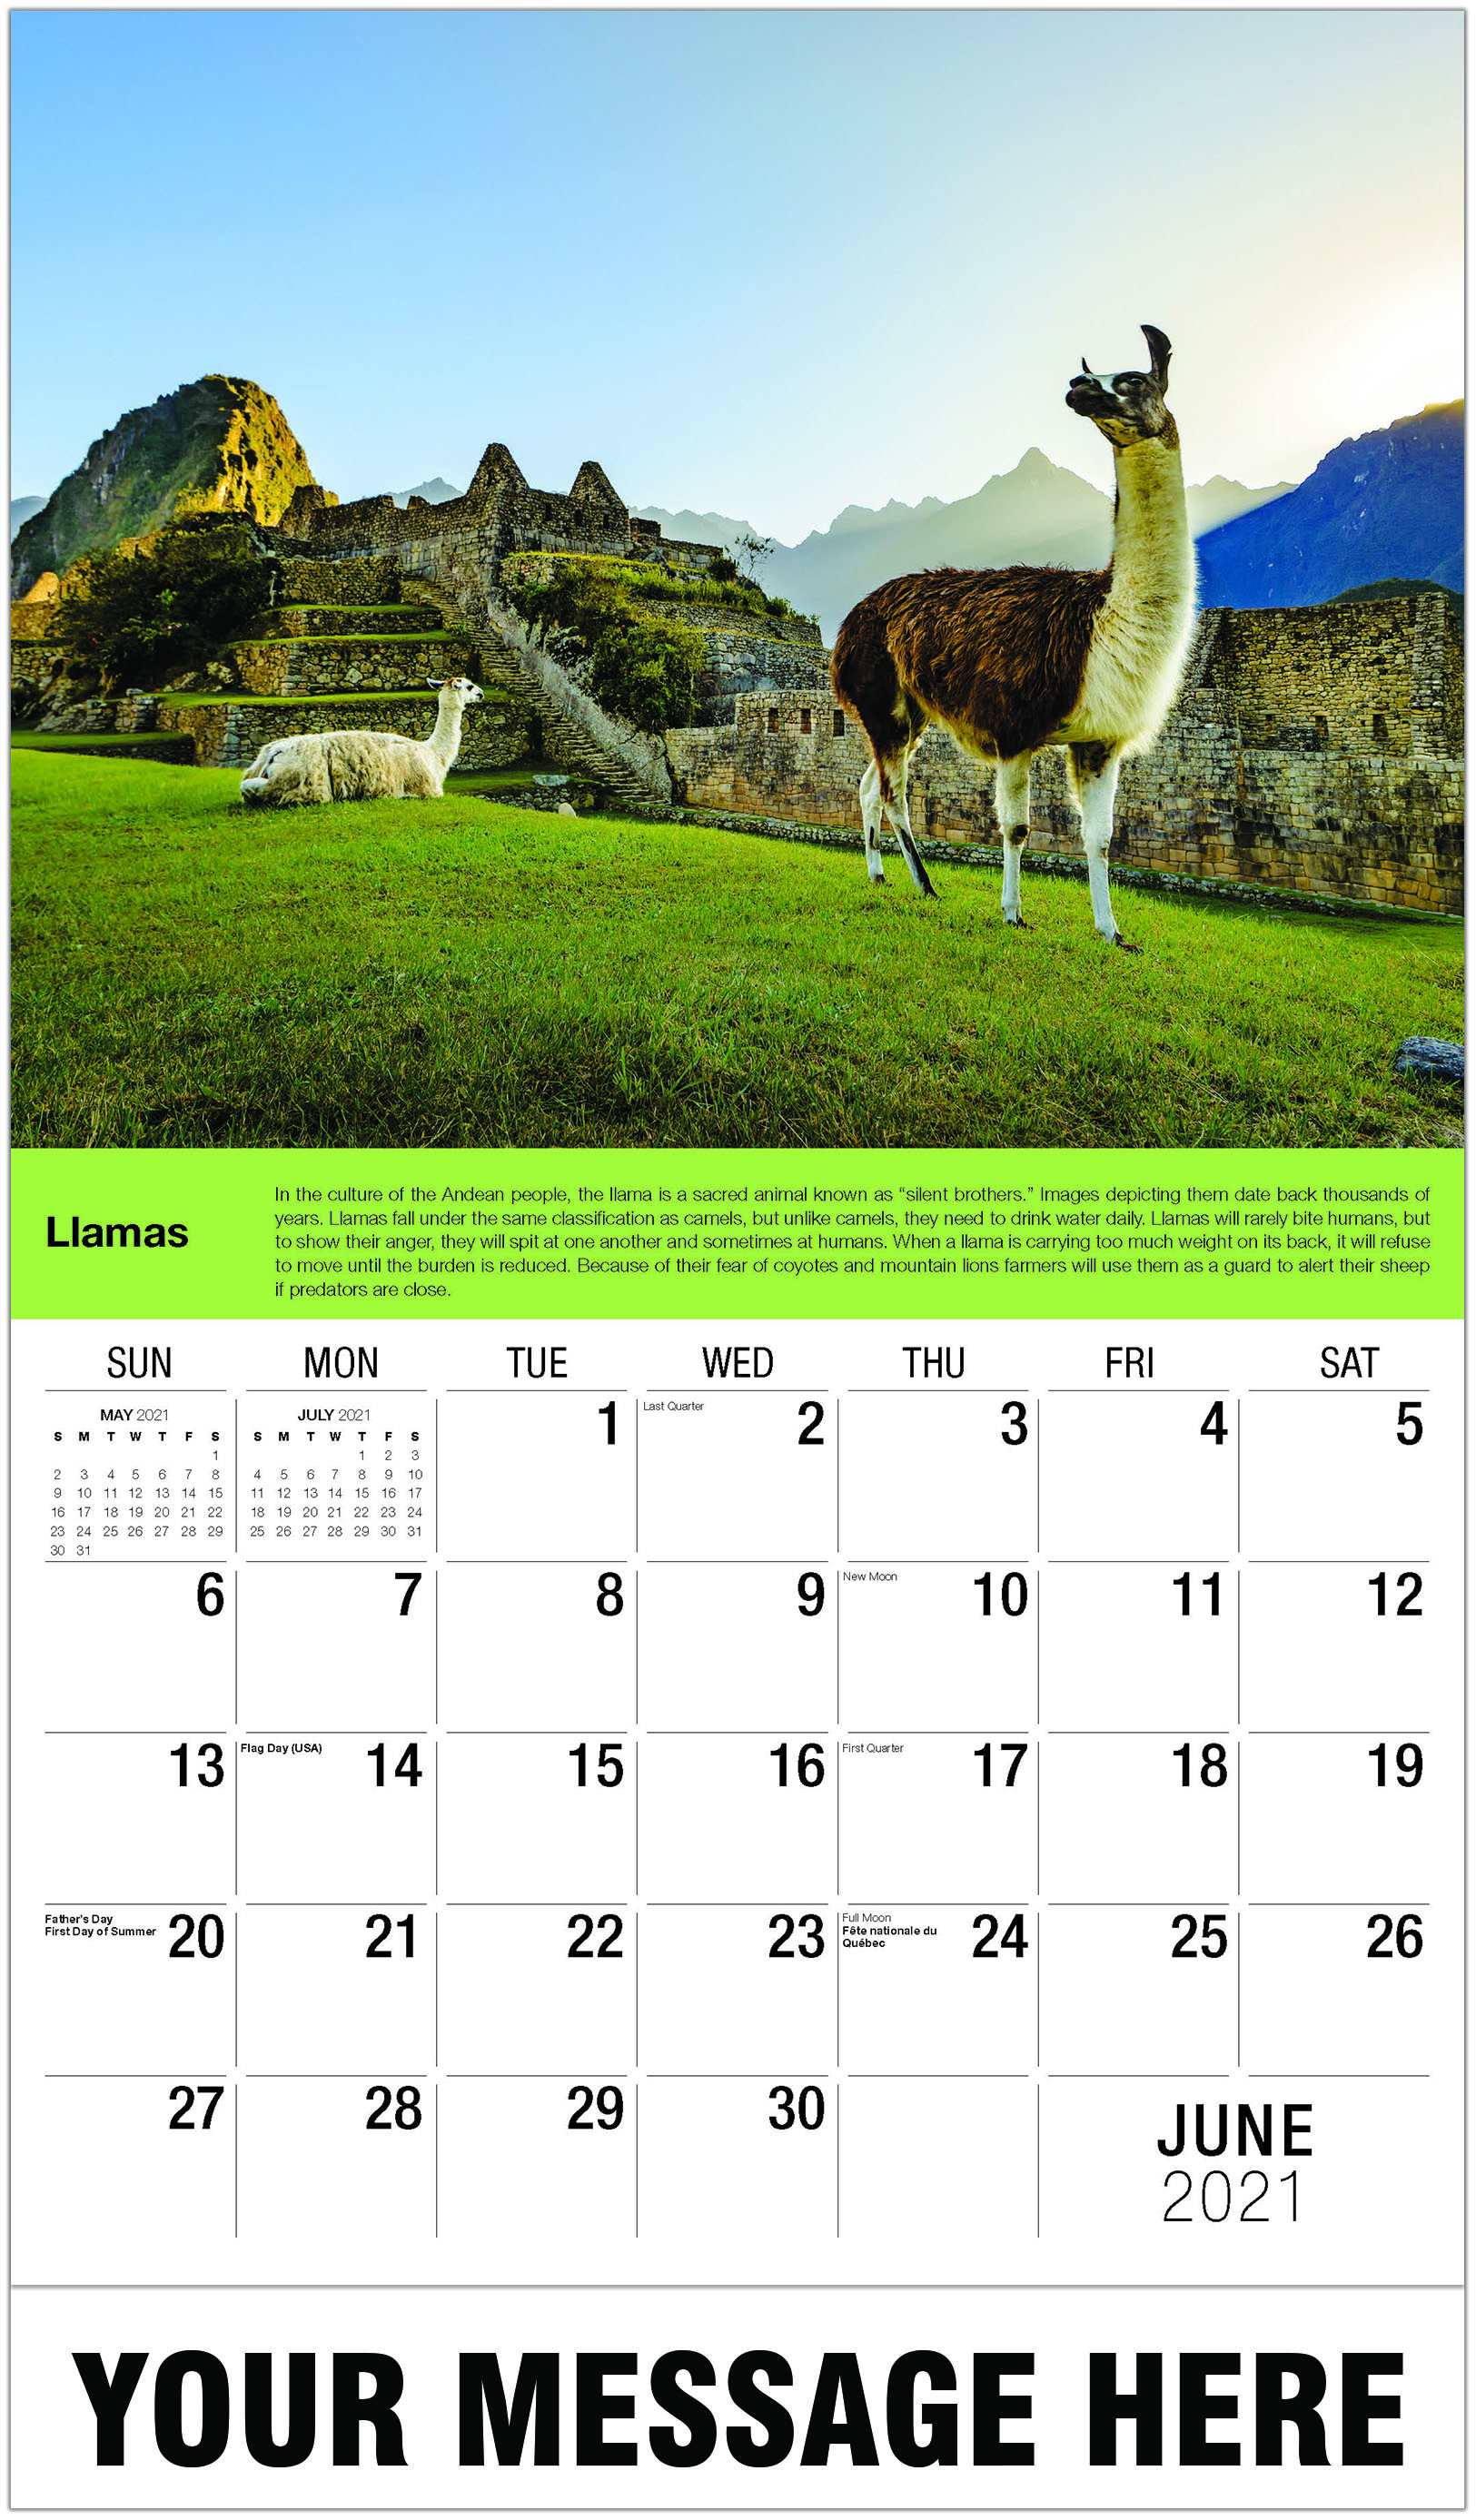 Llamas - June - International Wildlife 2021 Promotional Calendar